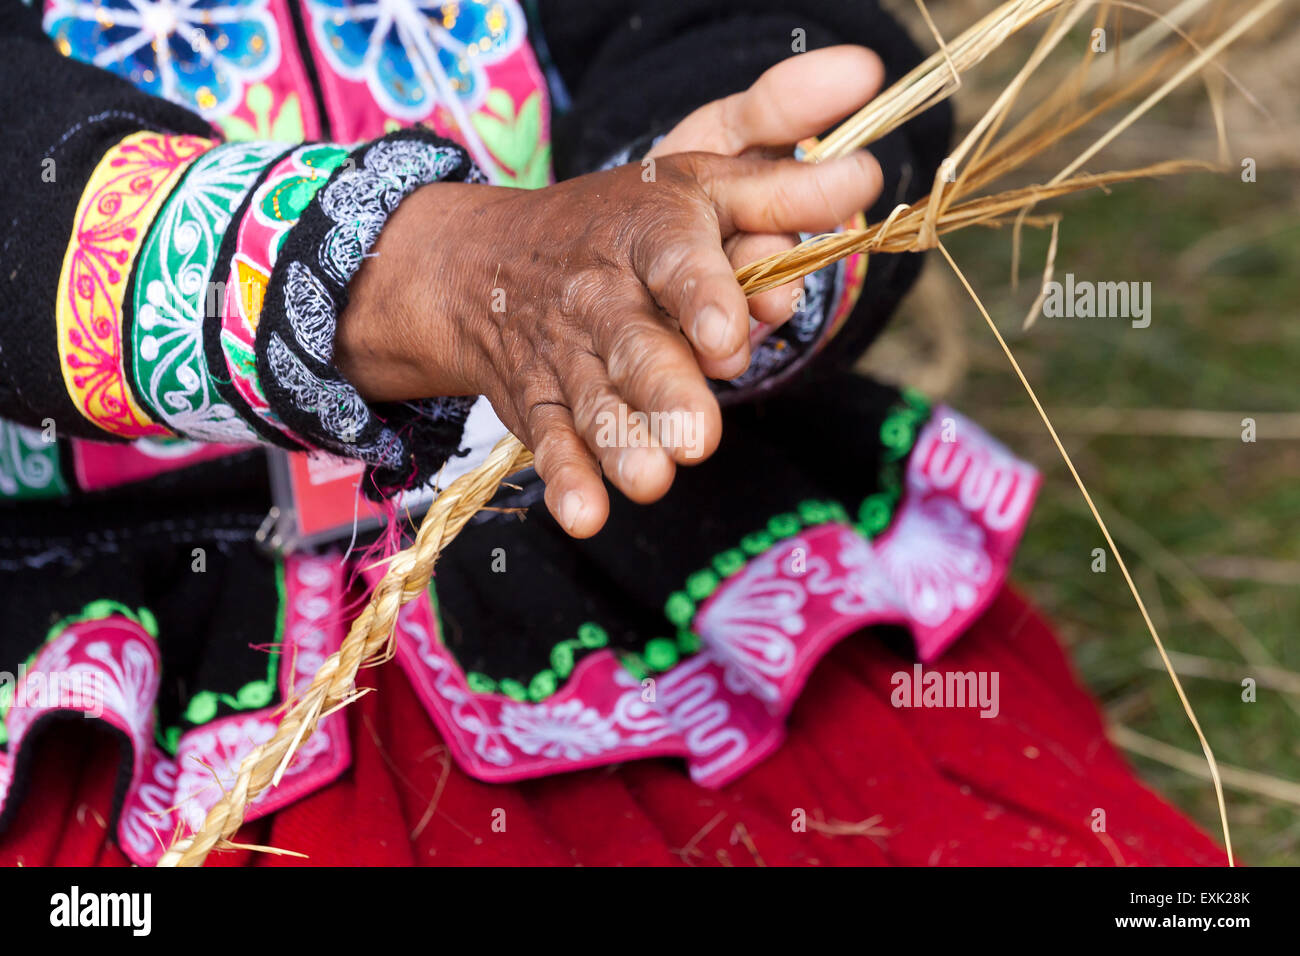 Indigenous Peruvian woman making rope from straw - Stock Image